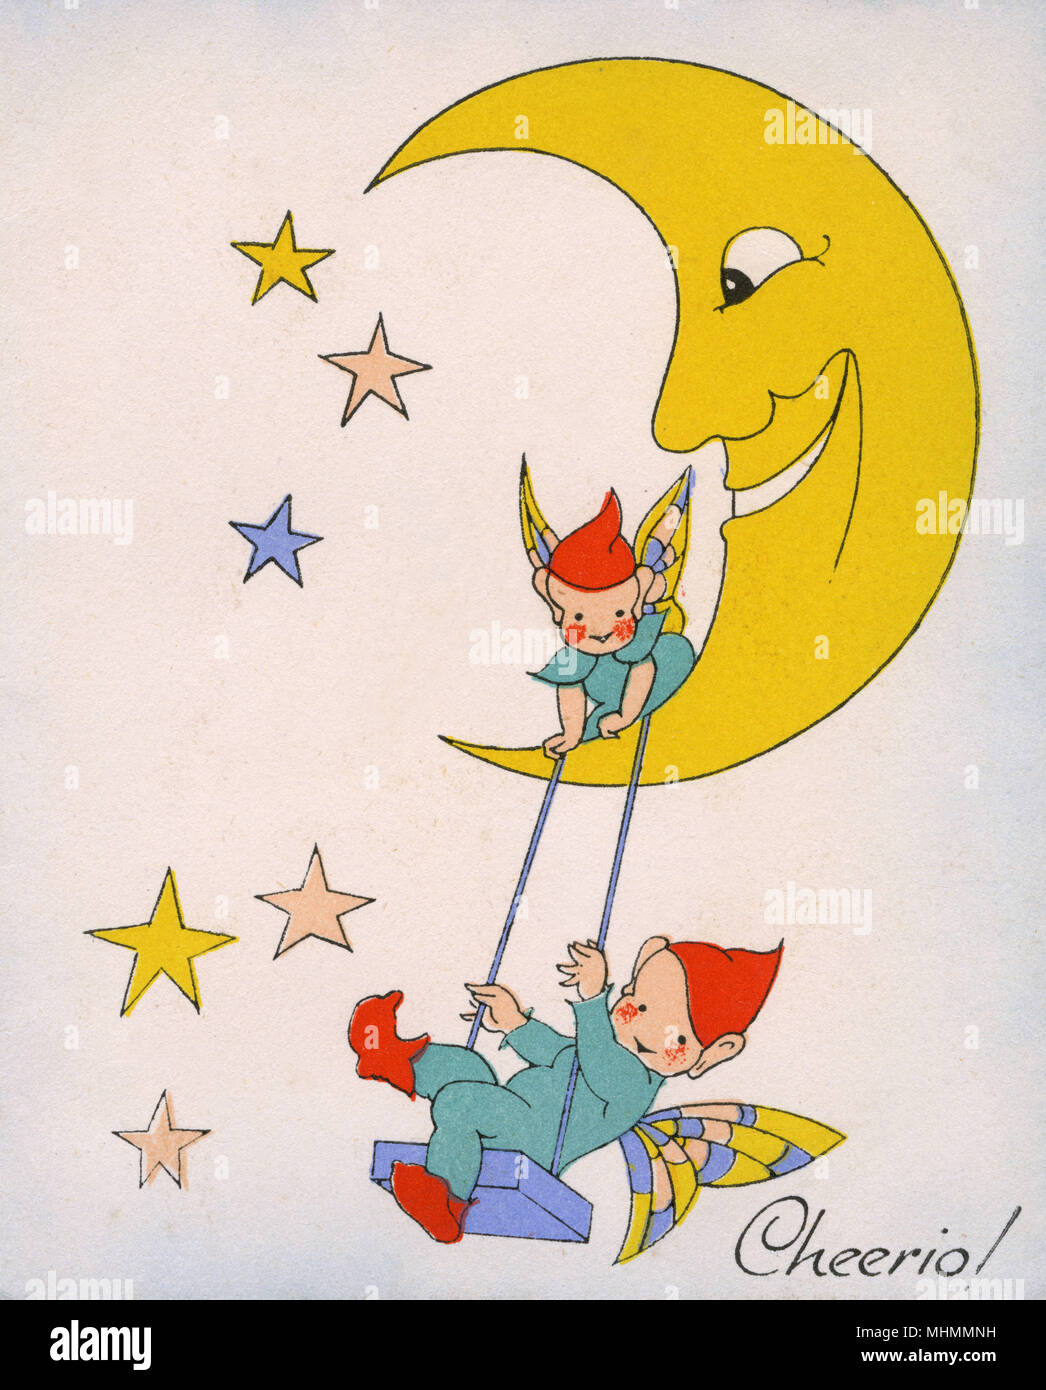 Vintage greetings card showing a crescent moon from which two cute pixies swing among the stars.     Date: c.1930 - Stock Image